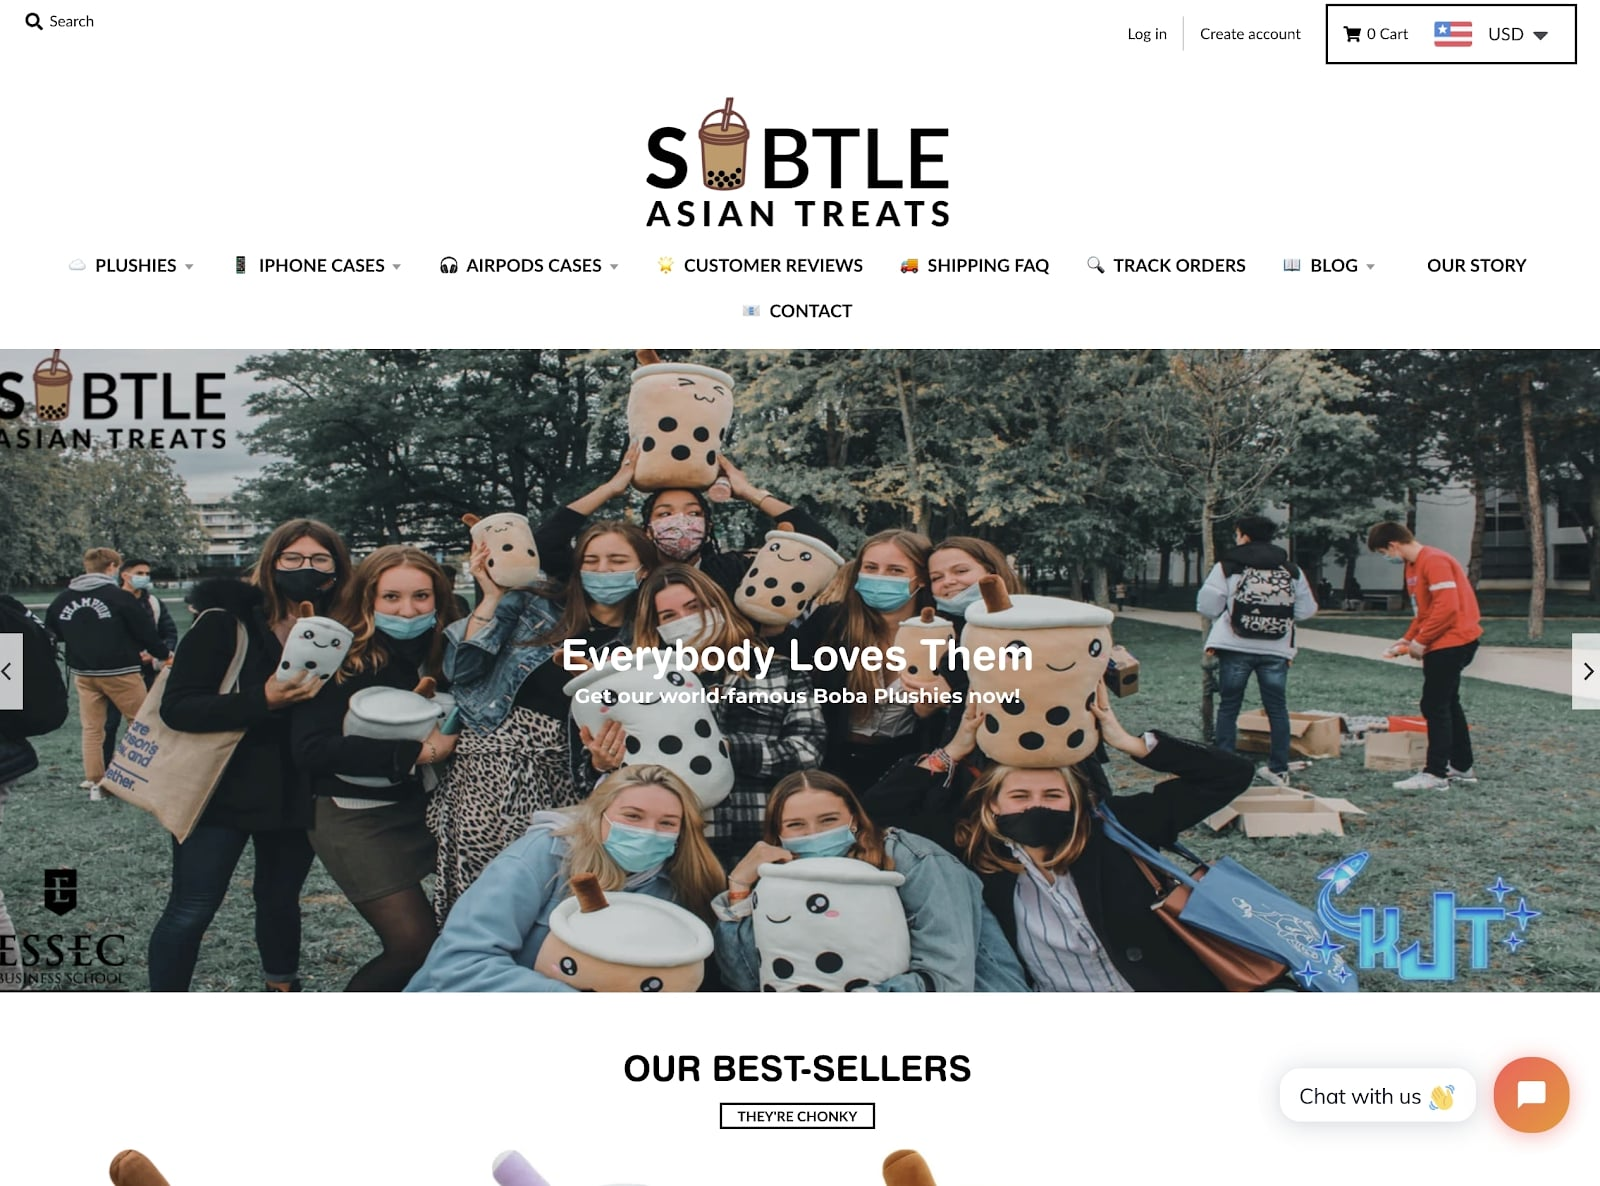 Subtle Asian Treats Dropshipping store